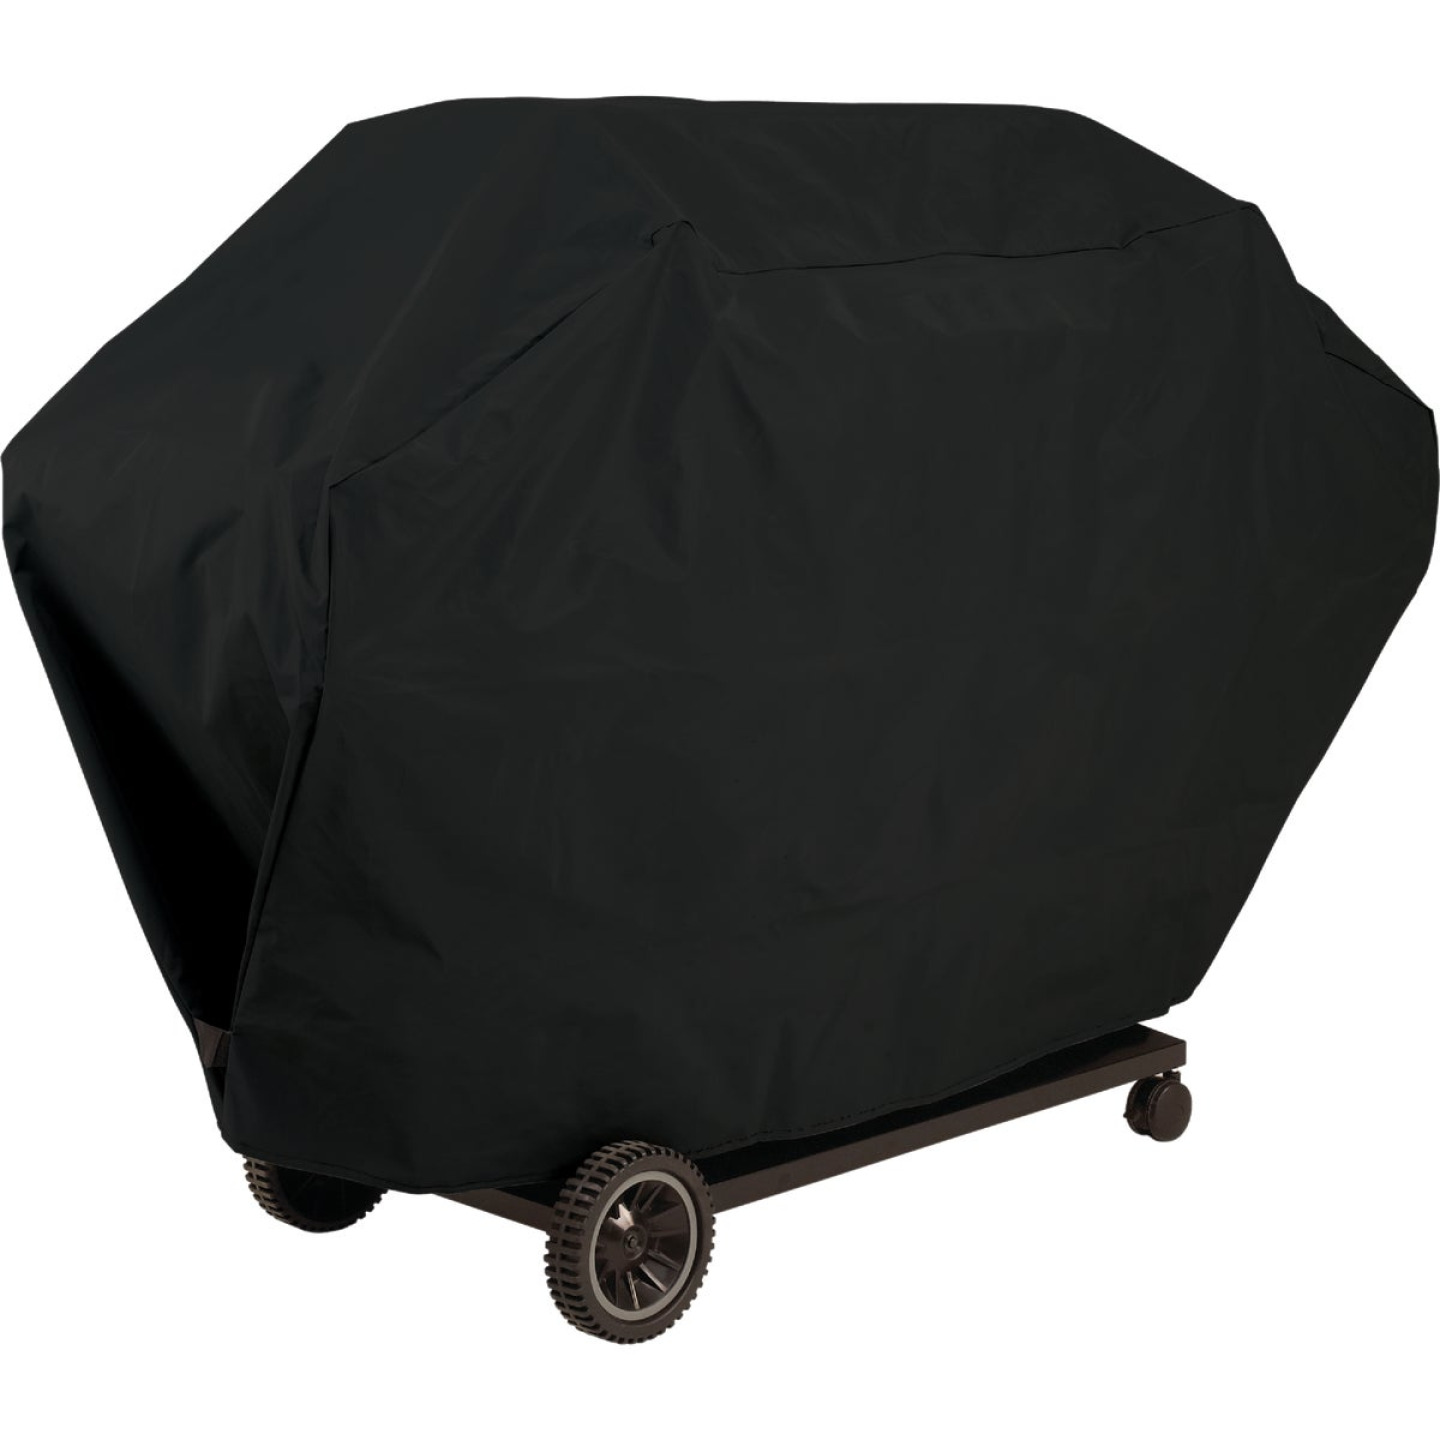 GrillPro 51 In. Black PVC Deluxe Grill Cover Image 1